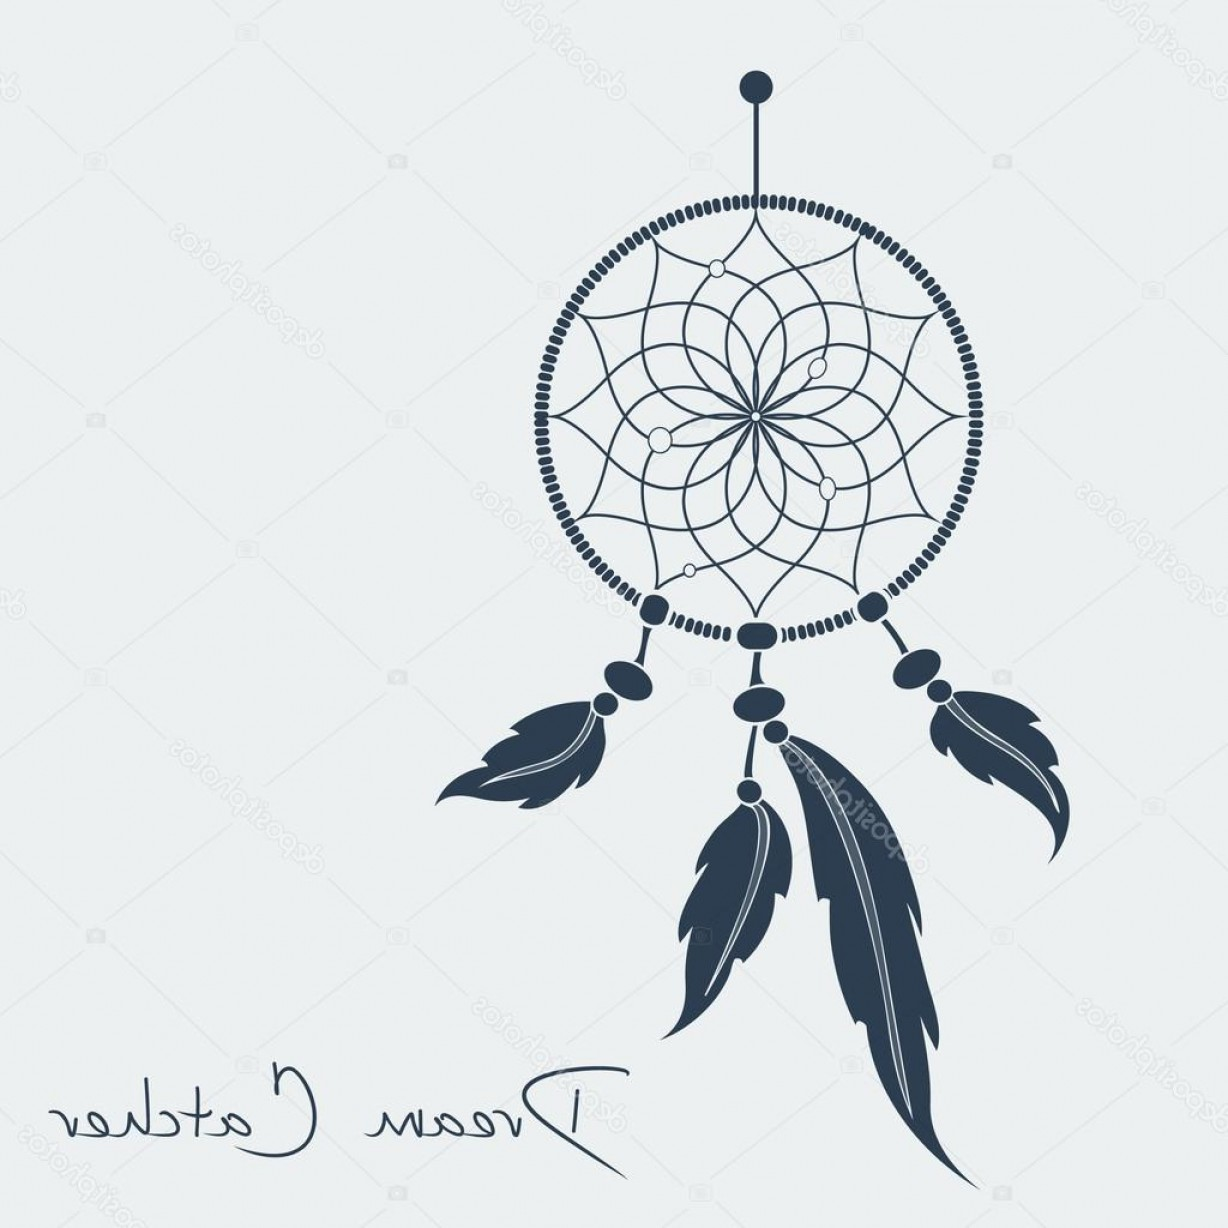 Dreamcatcher Tattoo Vector: Stock Illustration Vector Dream Catcher Black